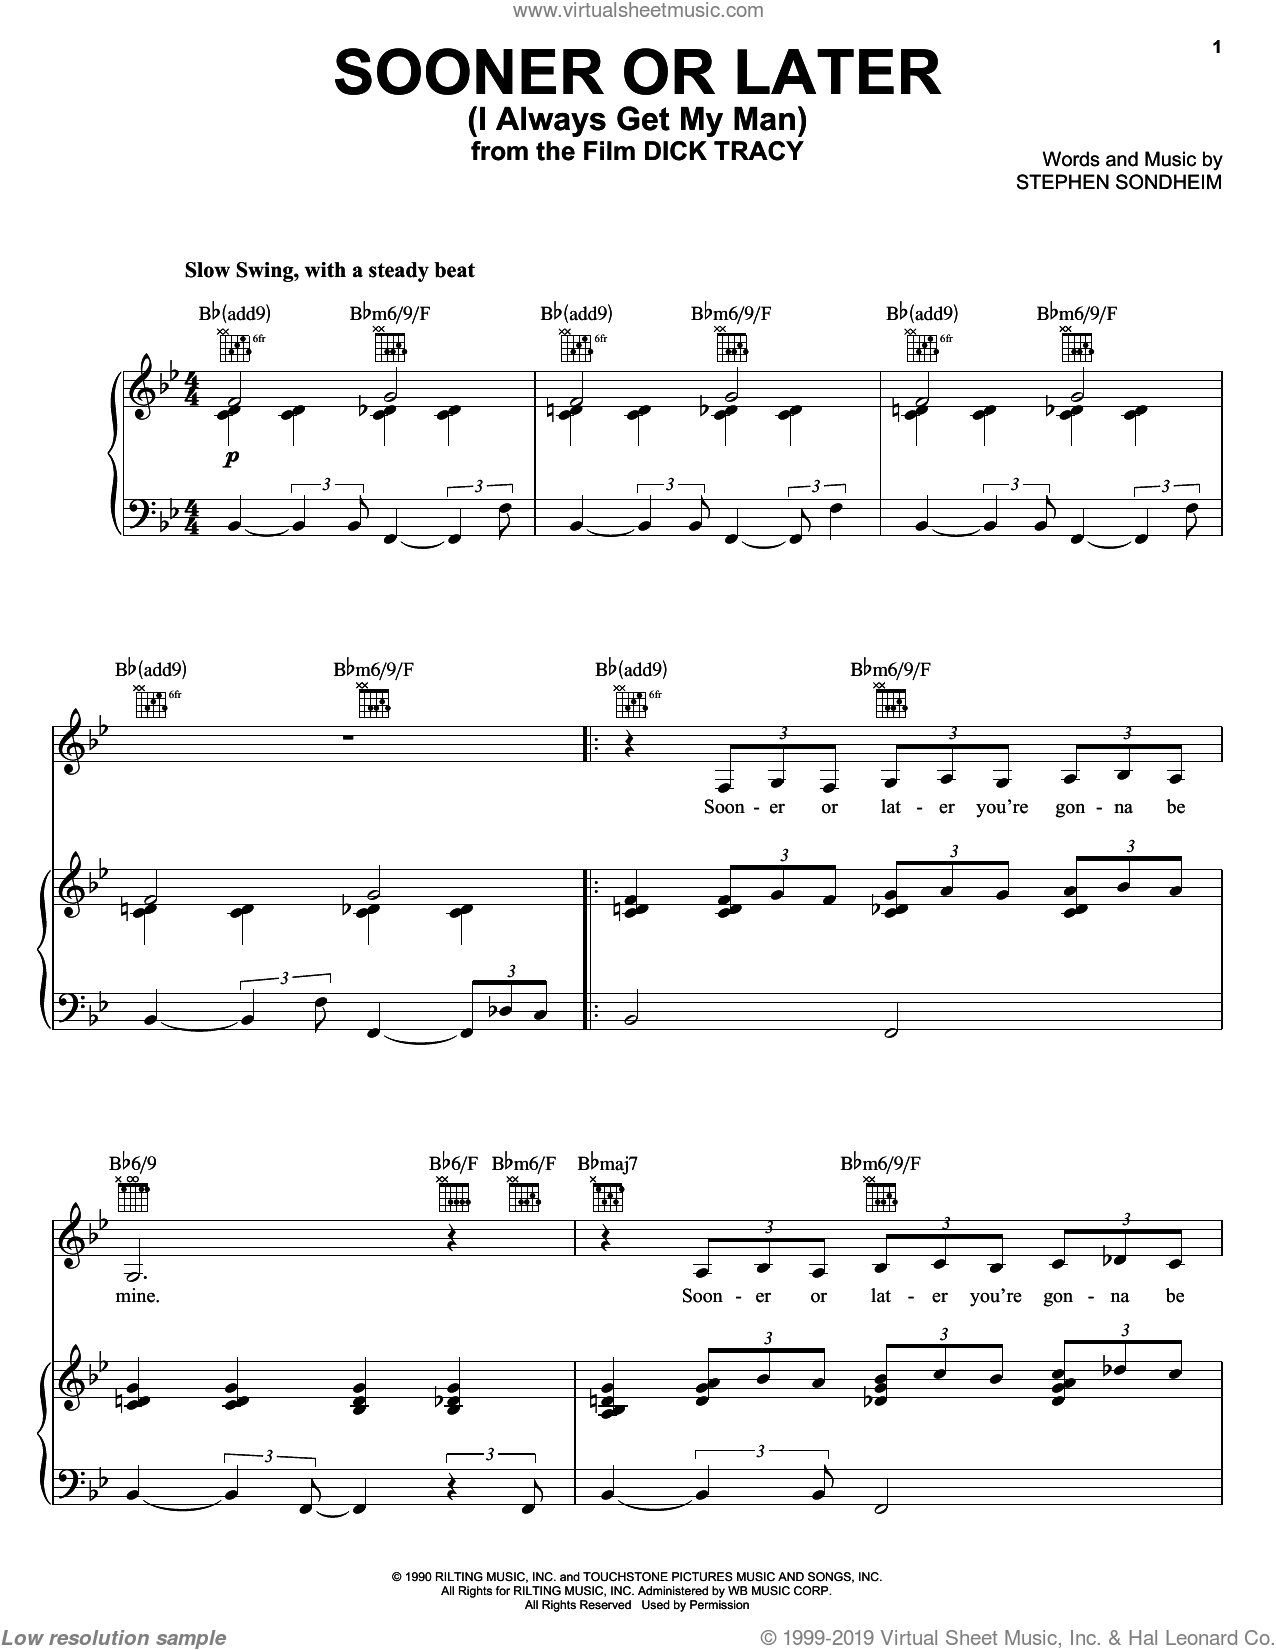 Sooner Or Later (I Always Get My Man) sheet music for voice, piano or guitar by Stephen Sondheim, intermediate skill level